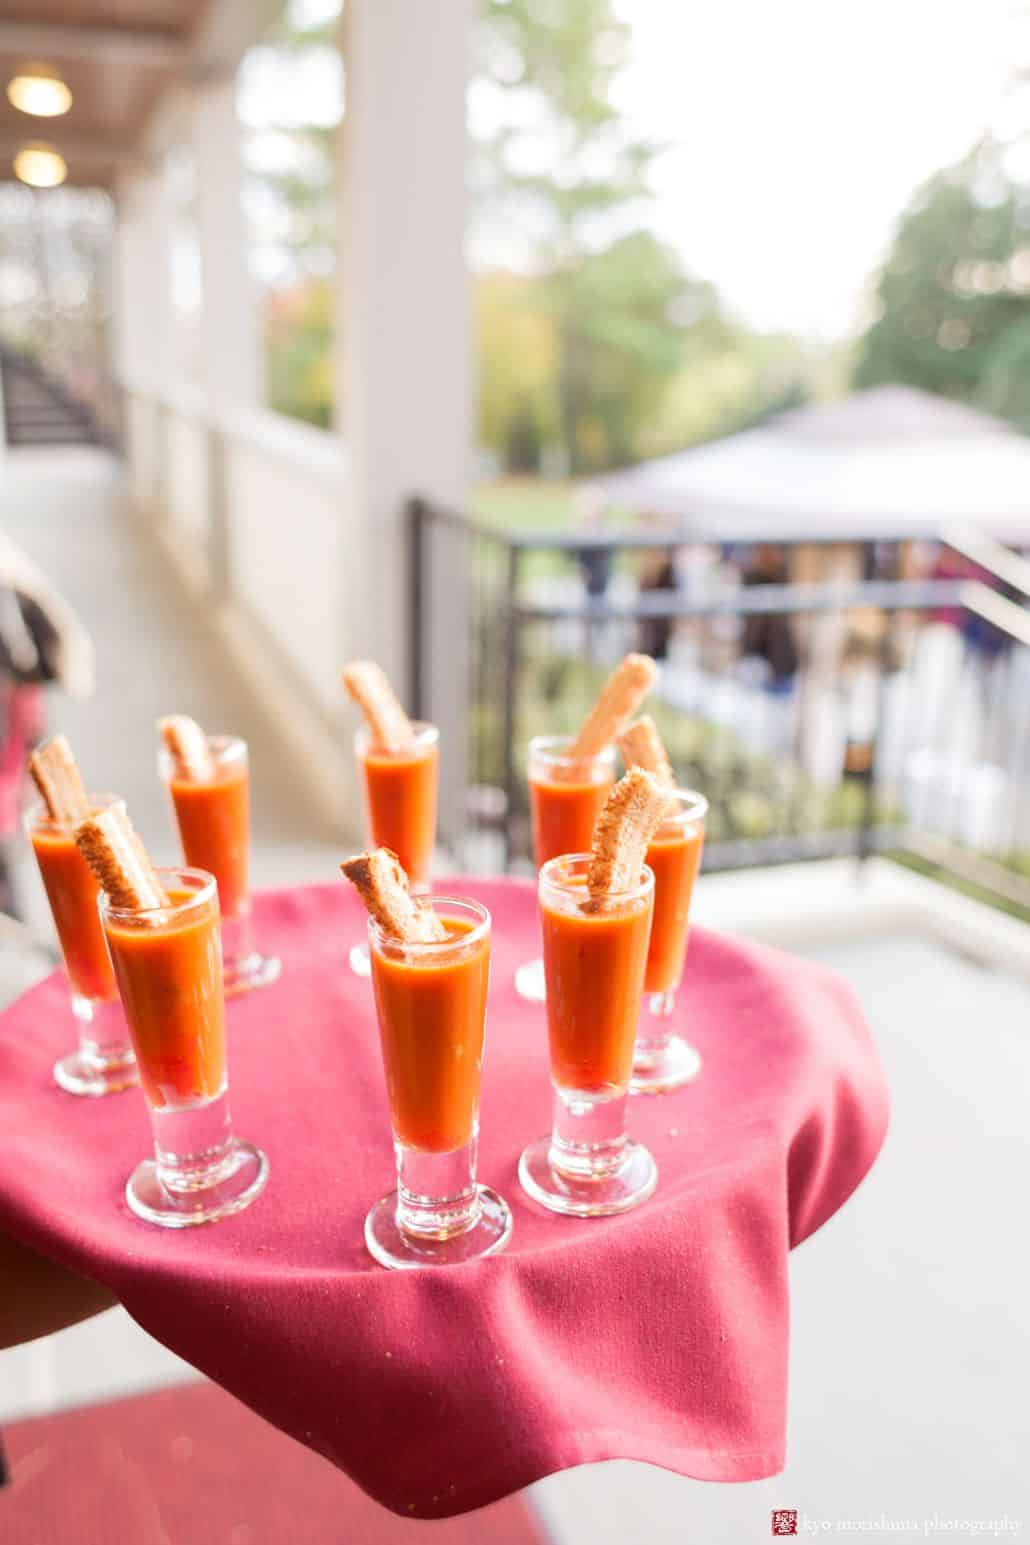 Red pepper gazpacho passed hors d'oeuvres at Princeton University Cap and Gown Club wedding reception